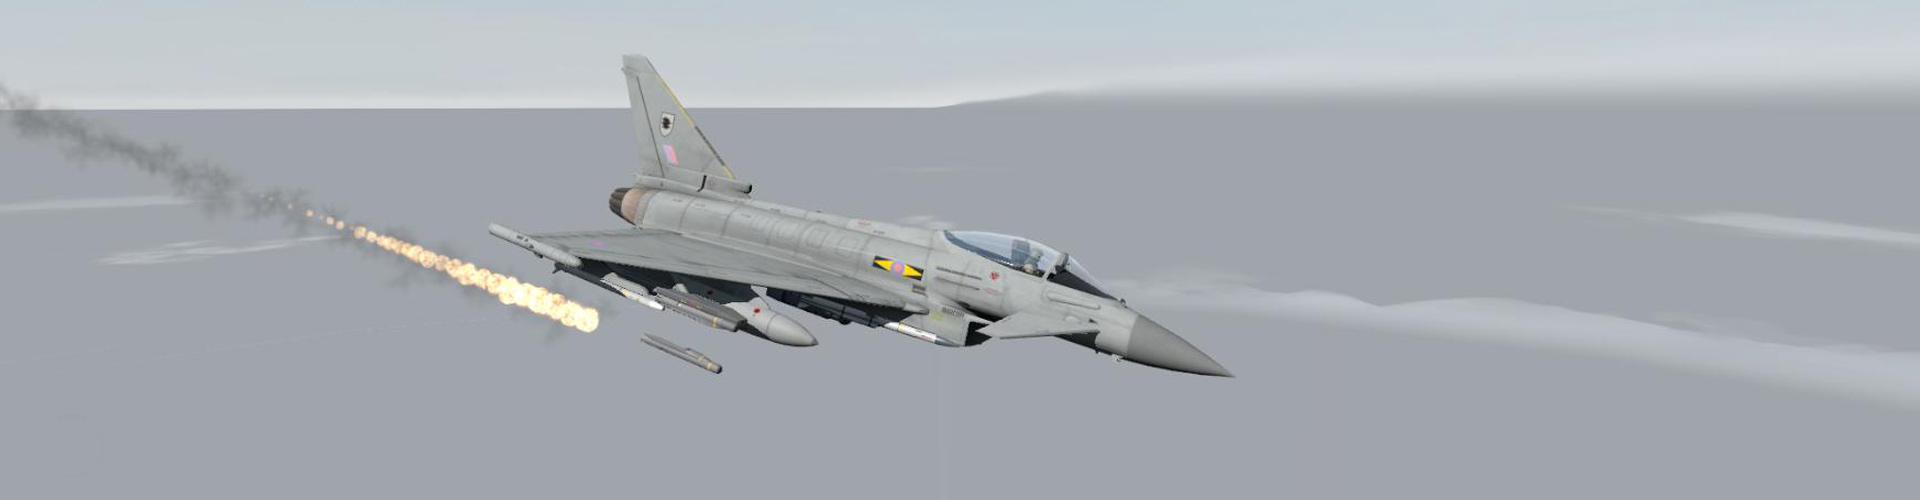 EuroFighter Typhoon FGR4 v2.601 Released